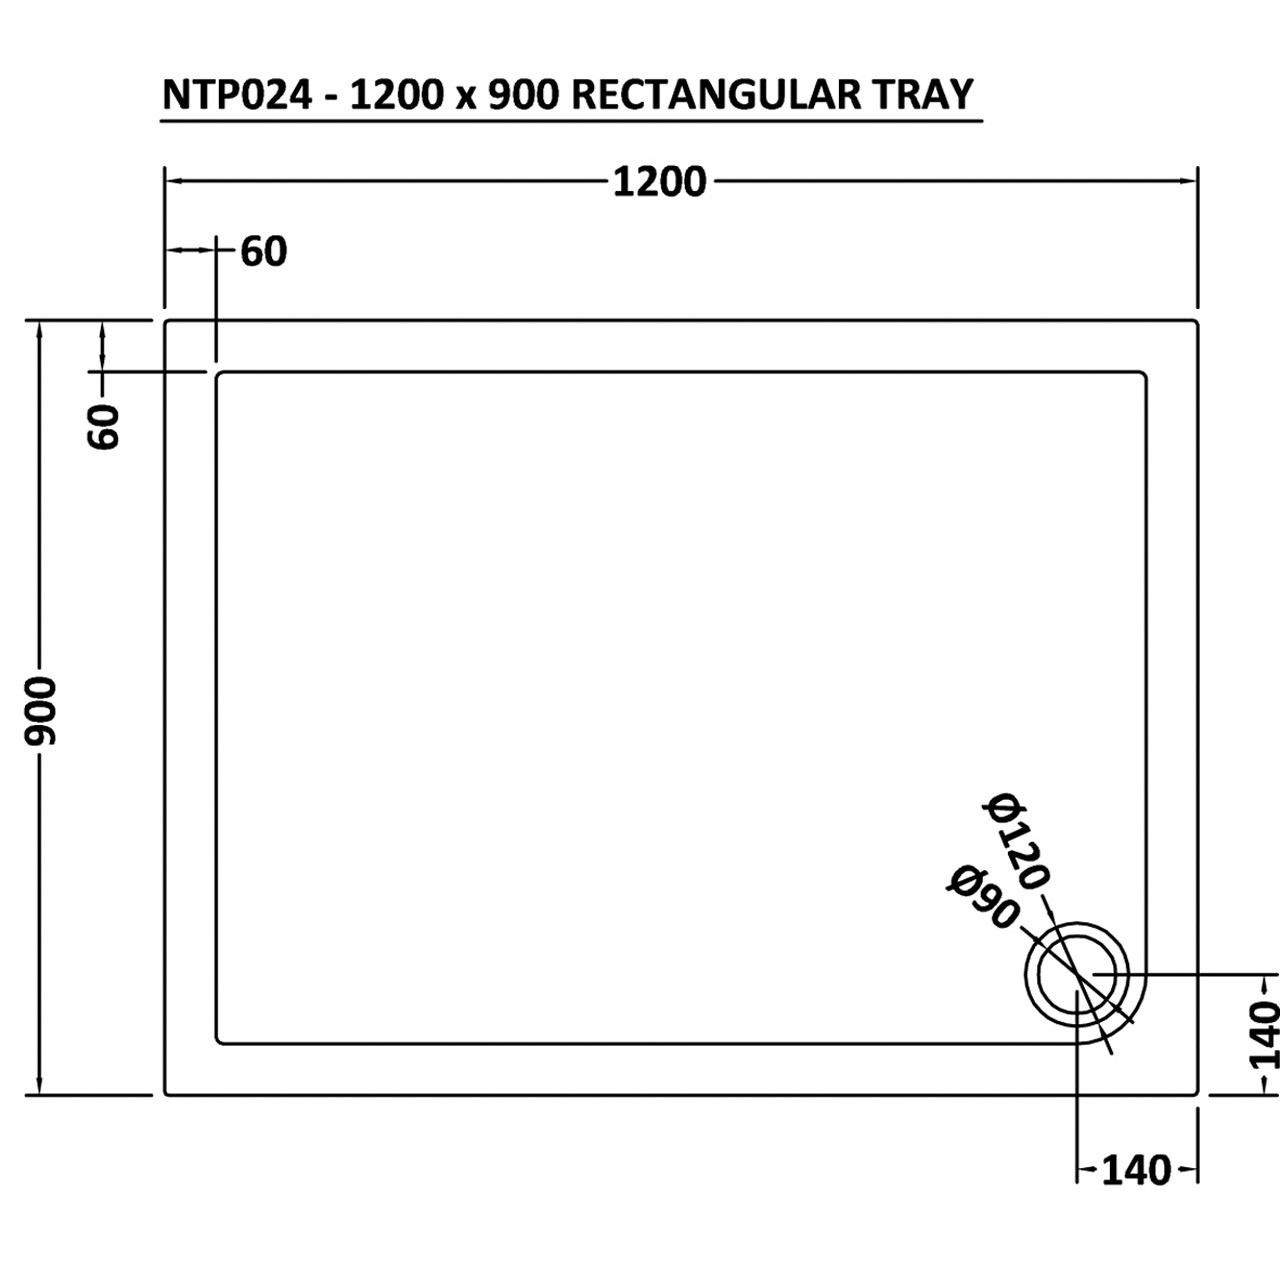 Premier Pearlstone 1200mm x 900mm x 40mm Rectangular Shower Tray with Corner Waste - NTP024